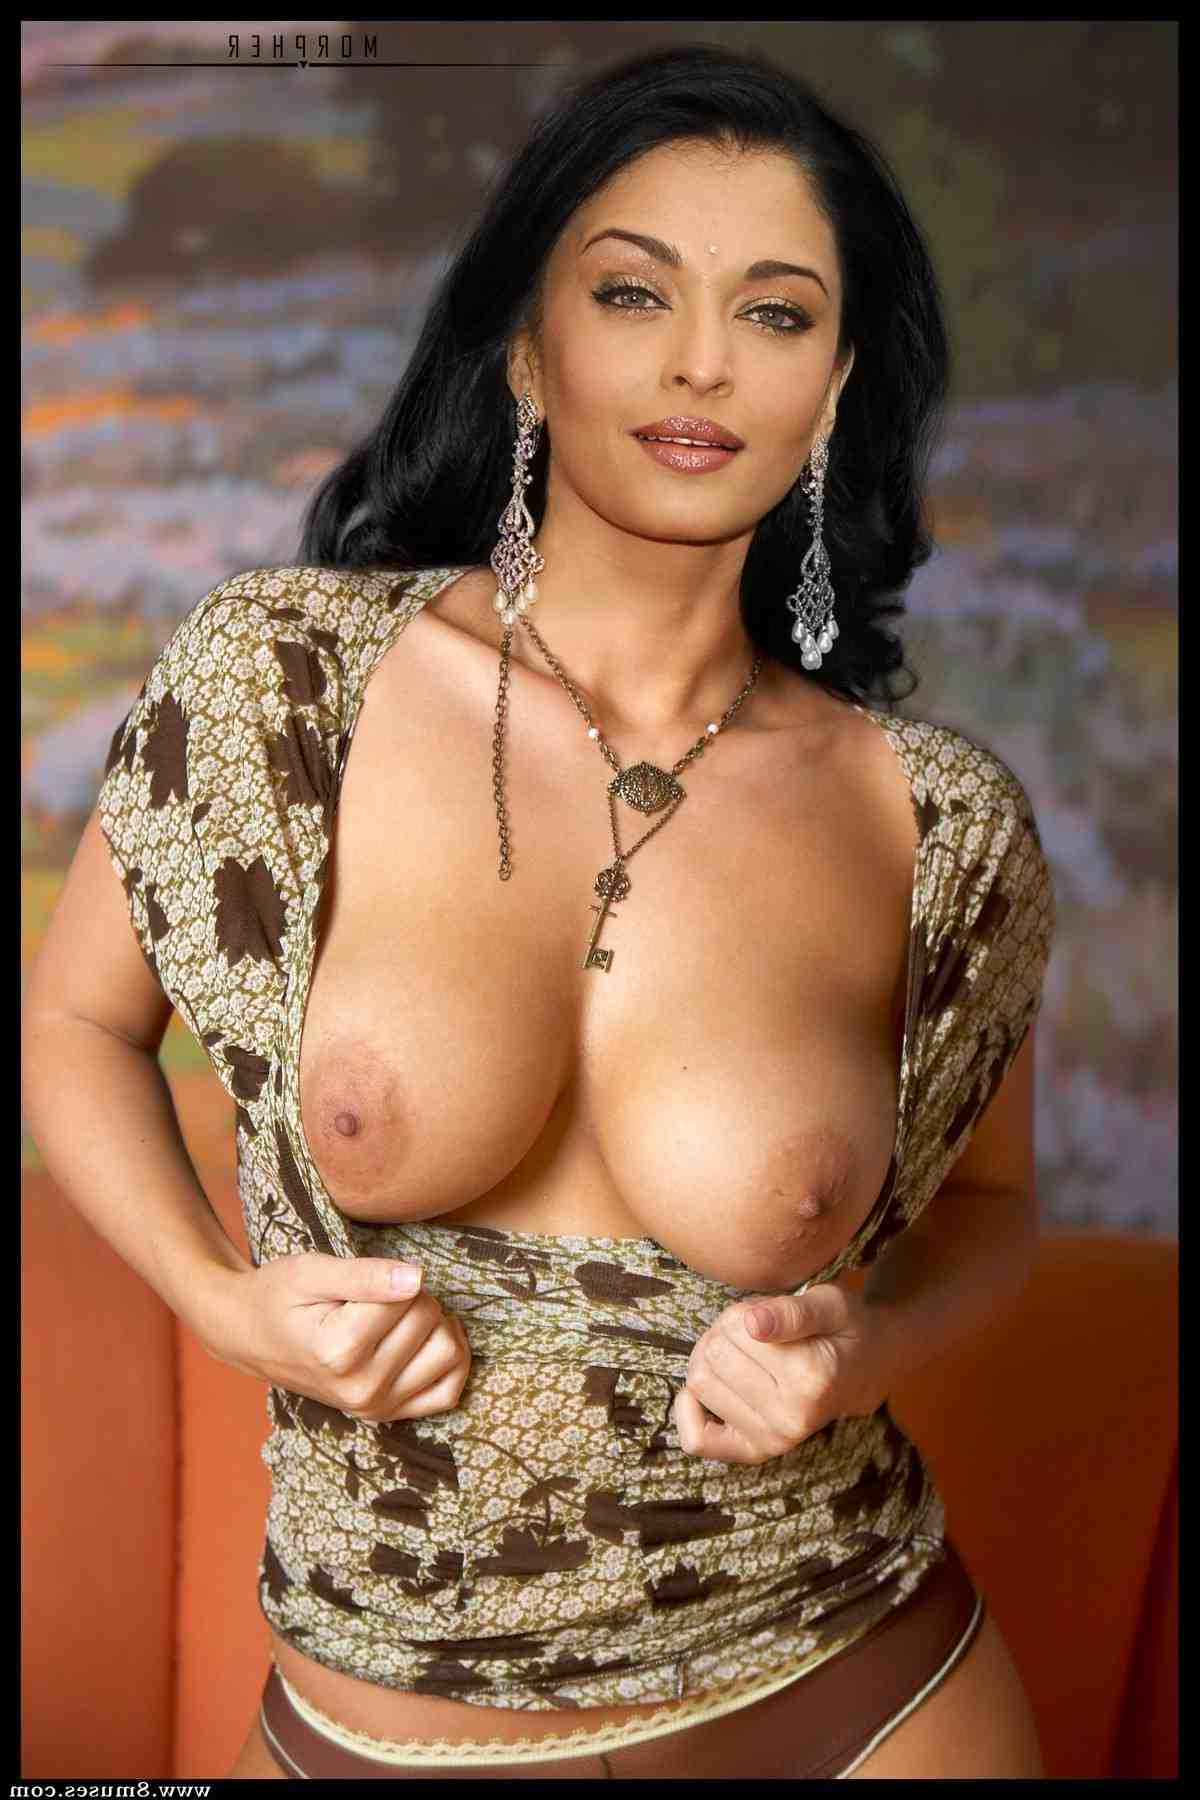 Fake-Celebrities-Sex-Pictures/Aishwarya-Rai Aishwarya_Rai__8muses_-_Sex_and_Porn_Comics_92.jpg